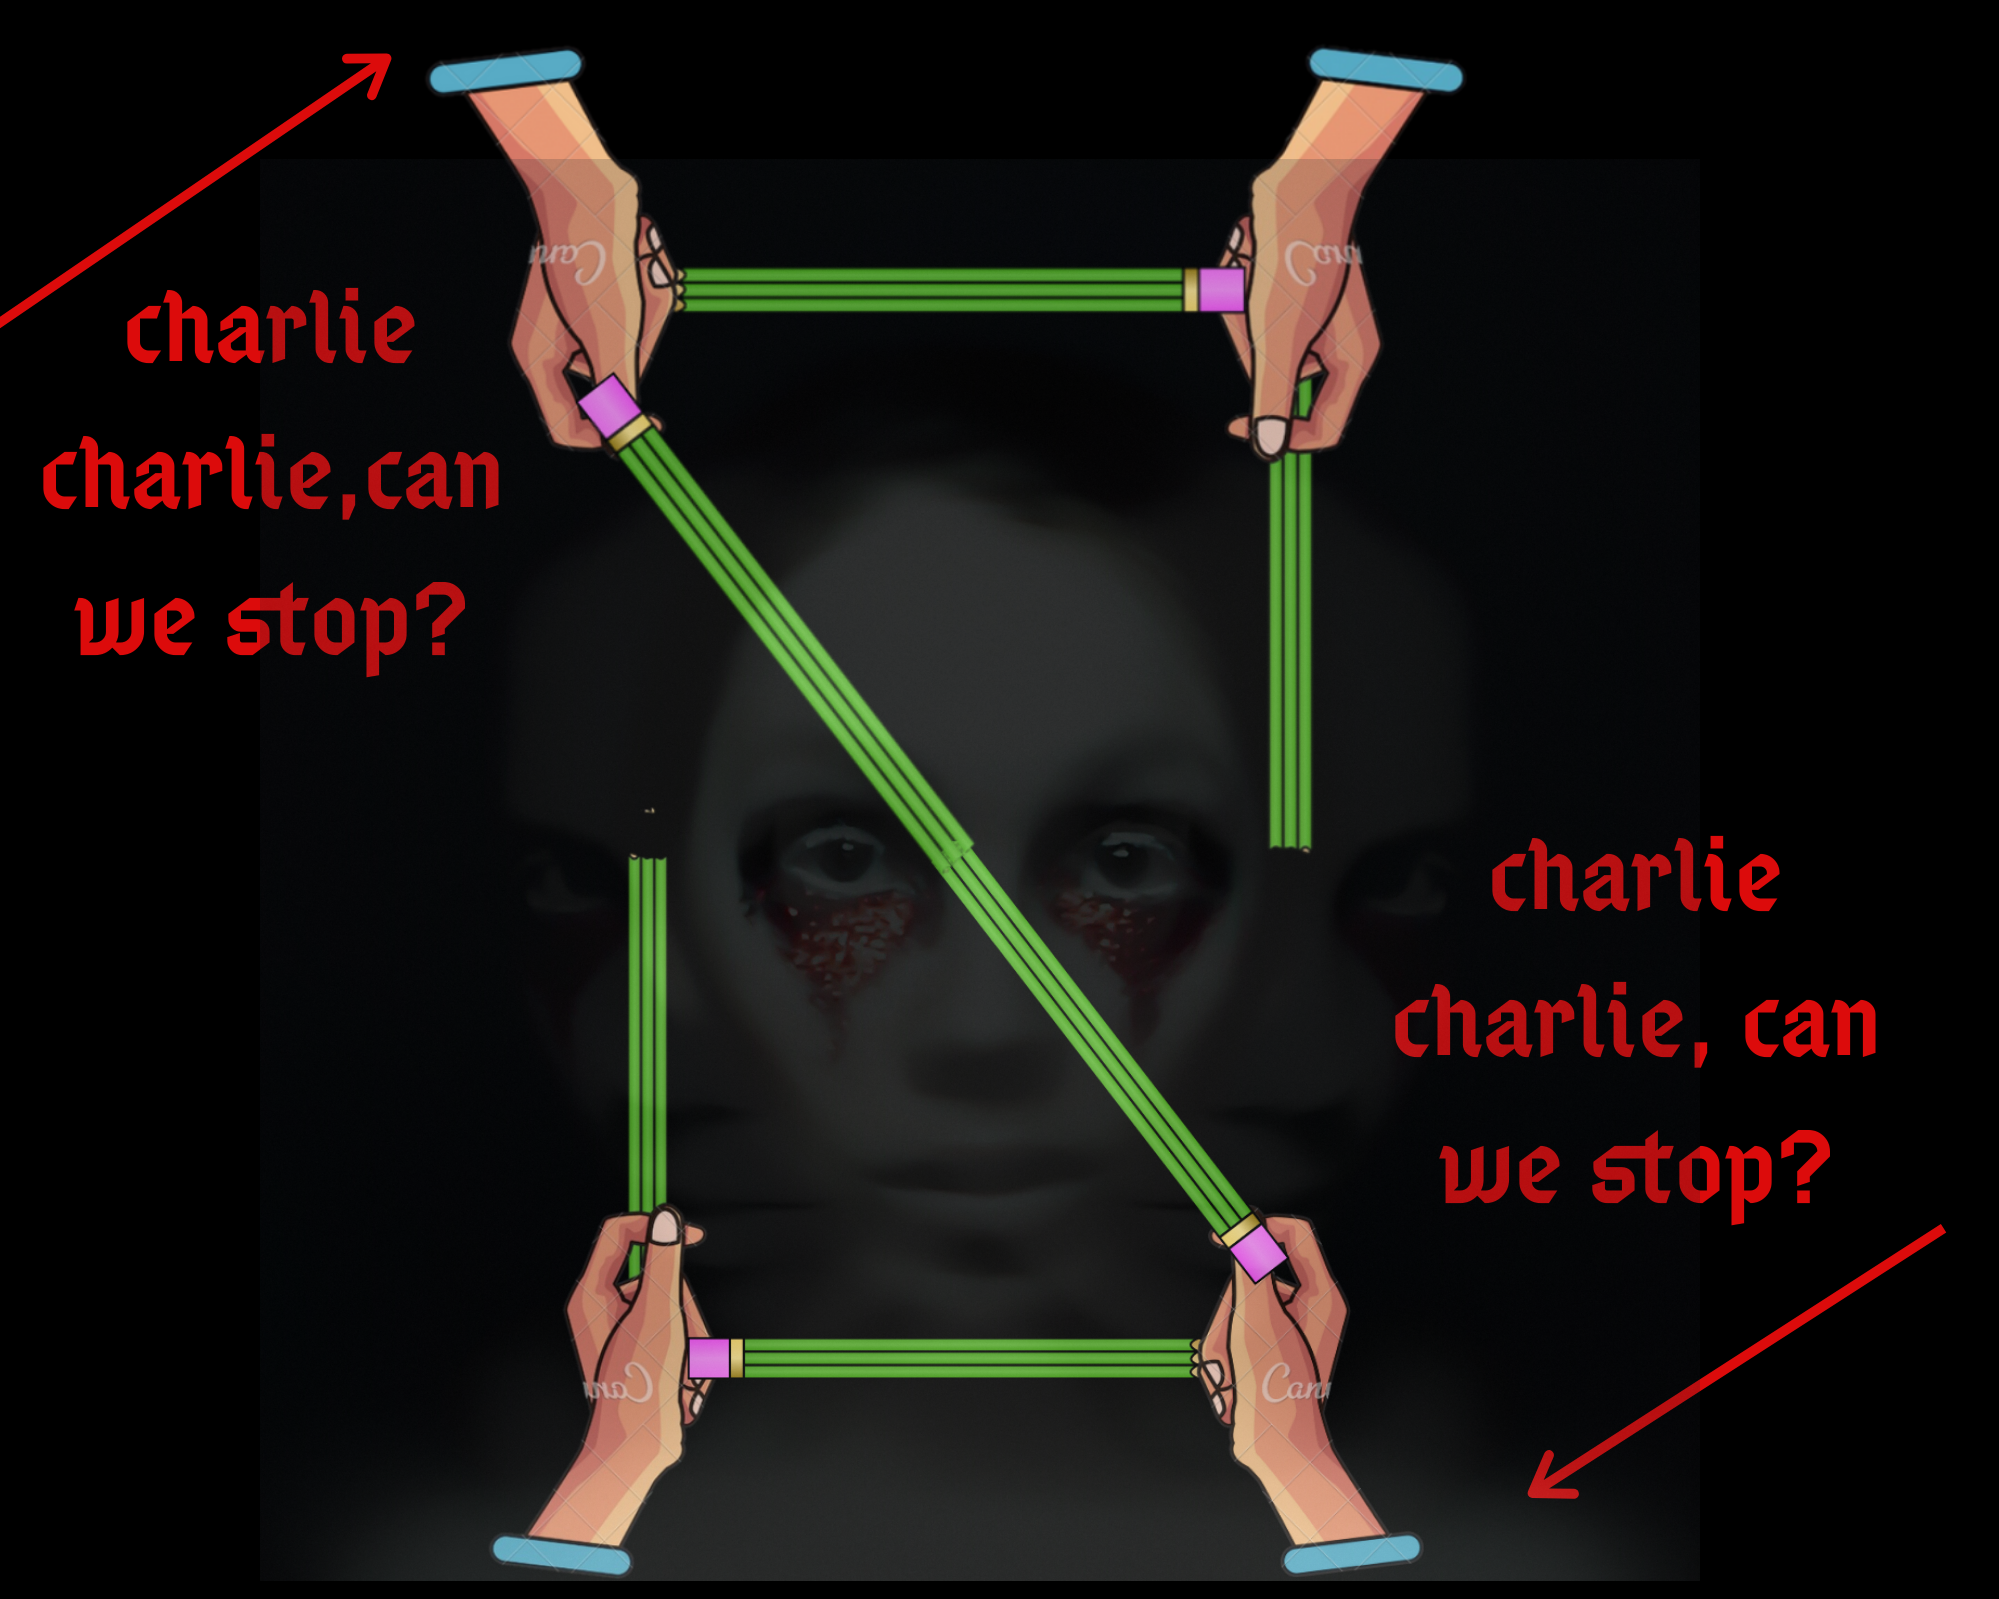 Charlie charlie-the game